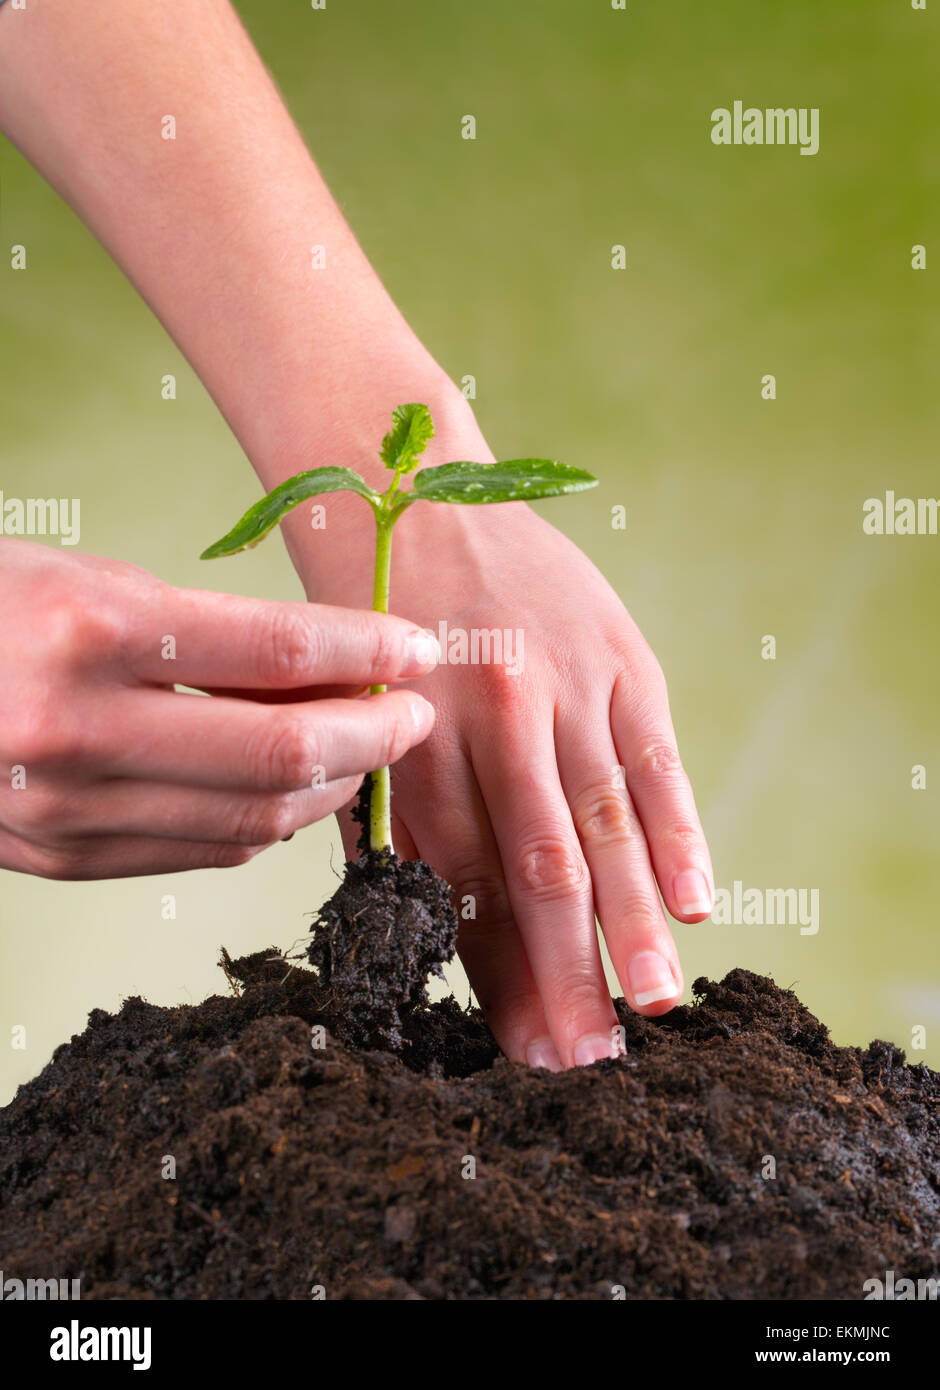 Woman hands seeding seed into pile of soil - Stock Image